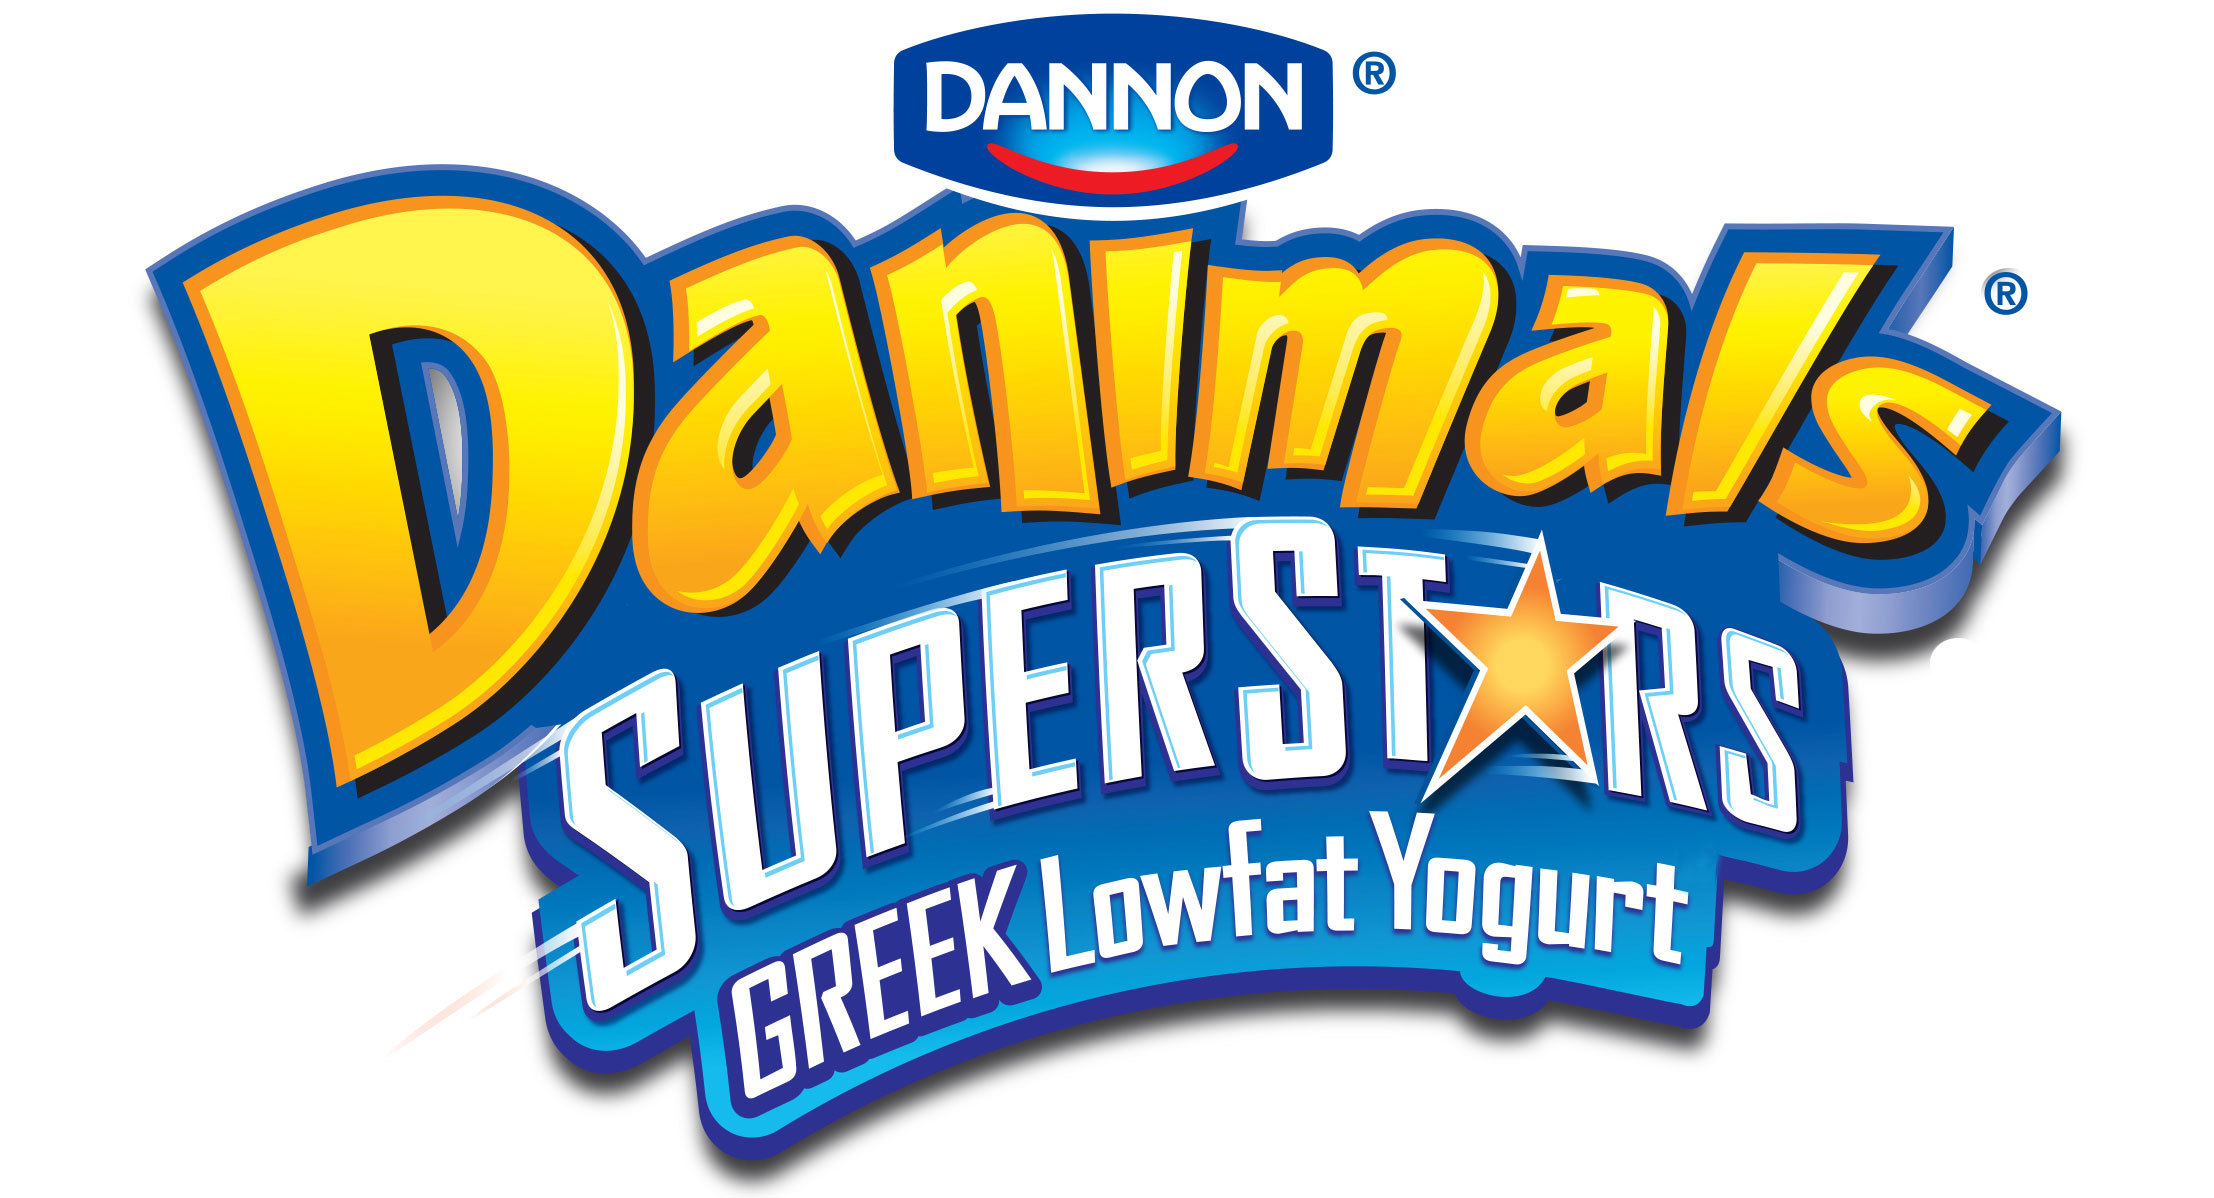 Dannon® Makes Nutritious Food Fun with